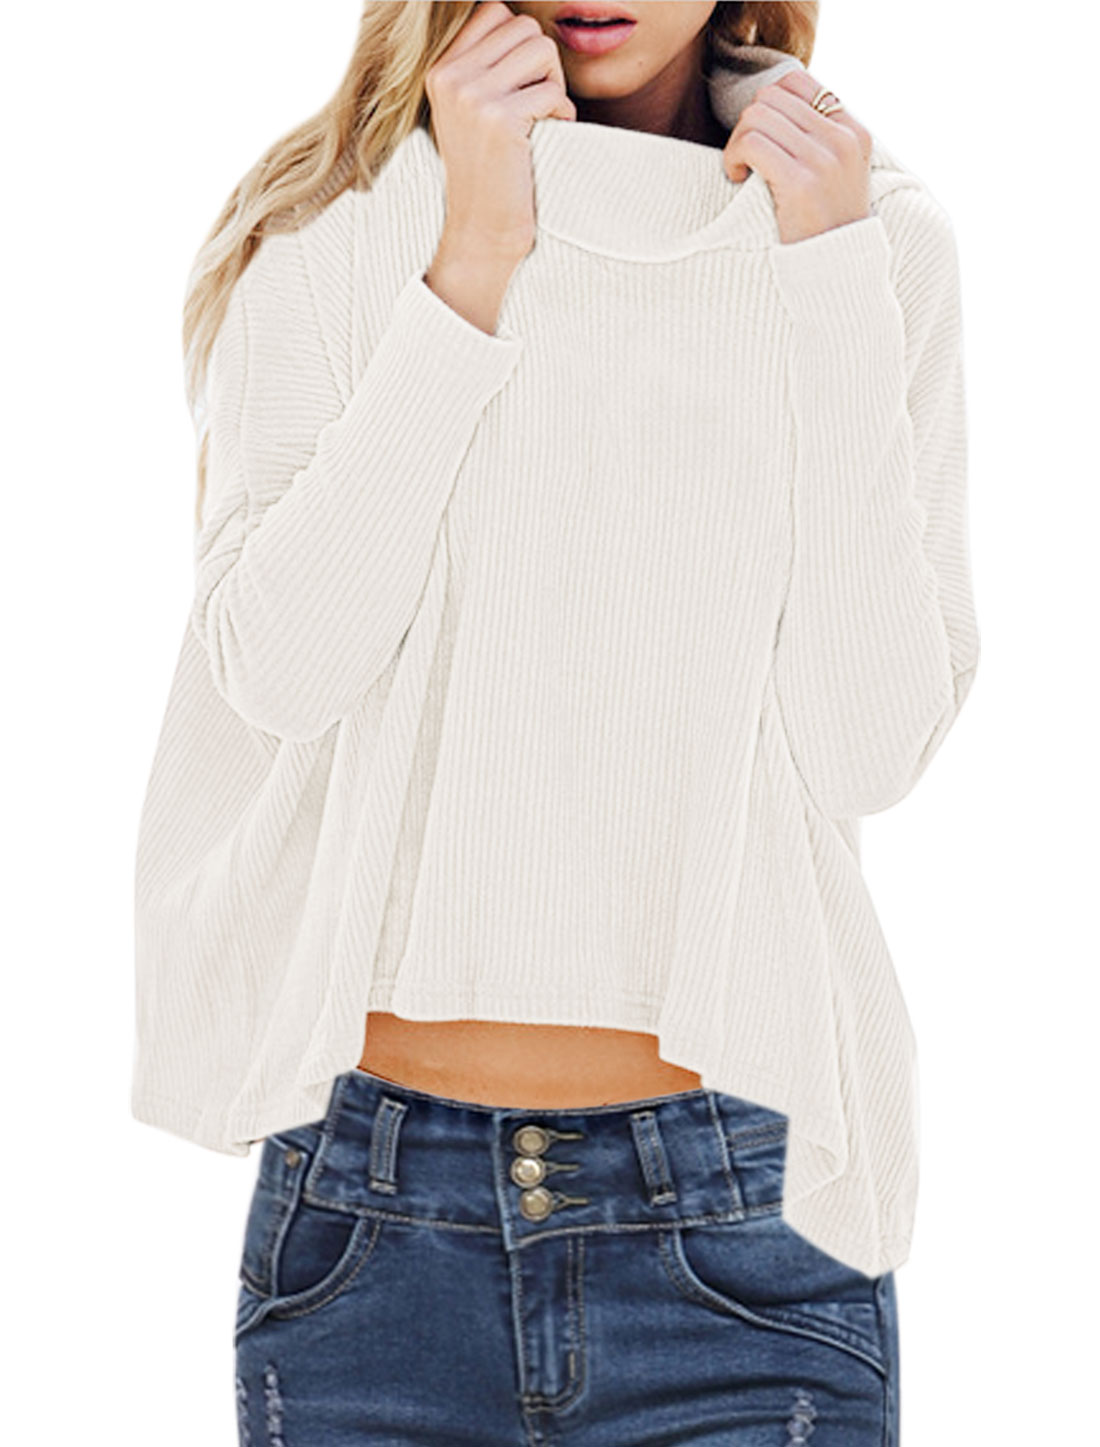 Ladies Cowl Neck Long Sleeves Ribbed High Low Hem Loose Knit Shirt White XS